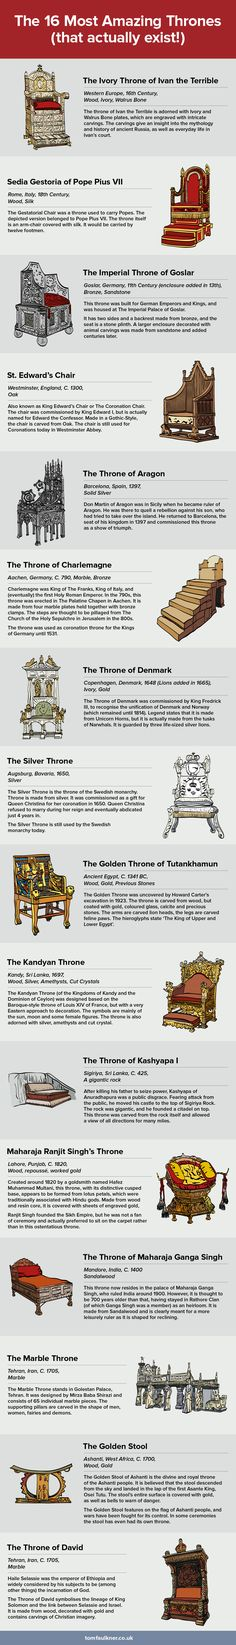 The 16 Most Amazing Thrones #Infographic #History #Thrones